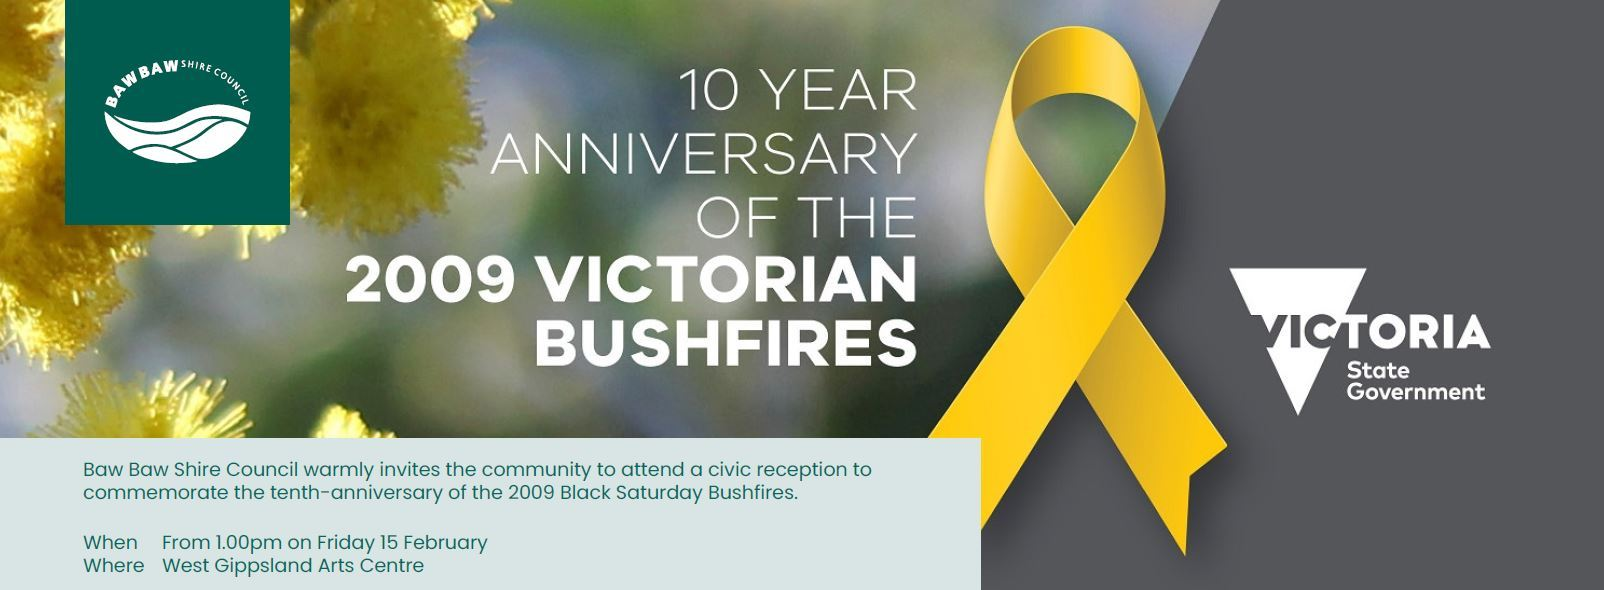 Invitation-2009-Victorian-Bushfire-Commemoration.jpg